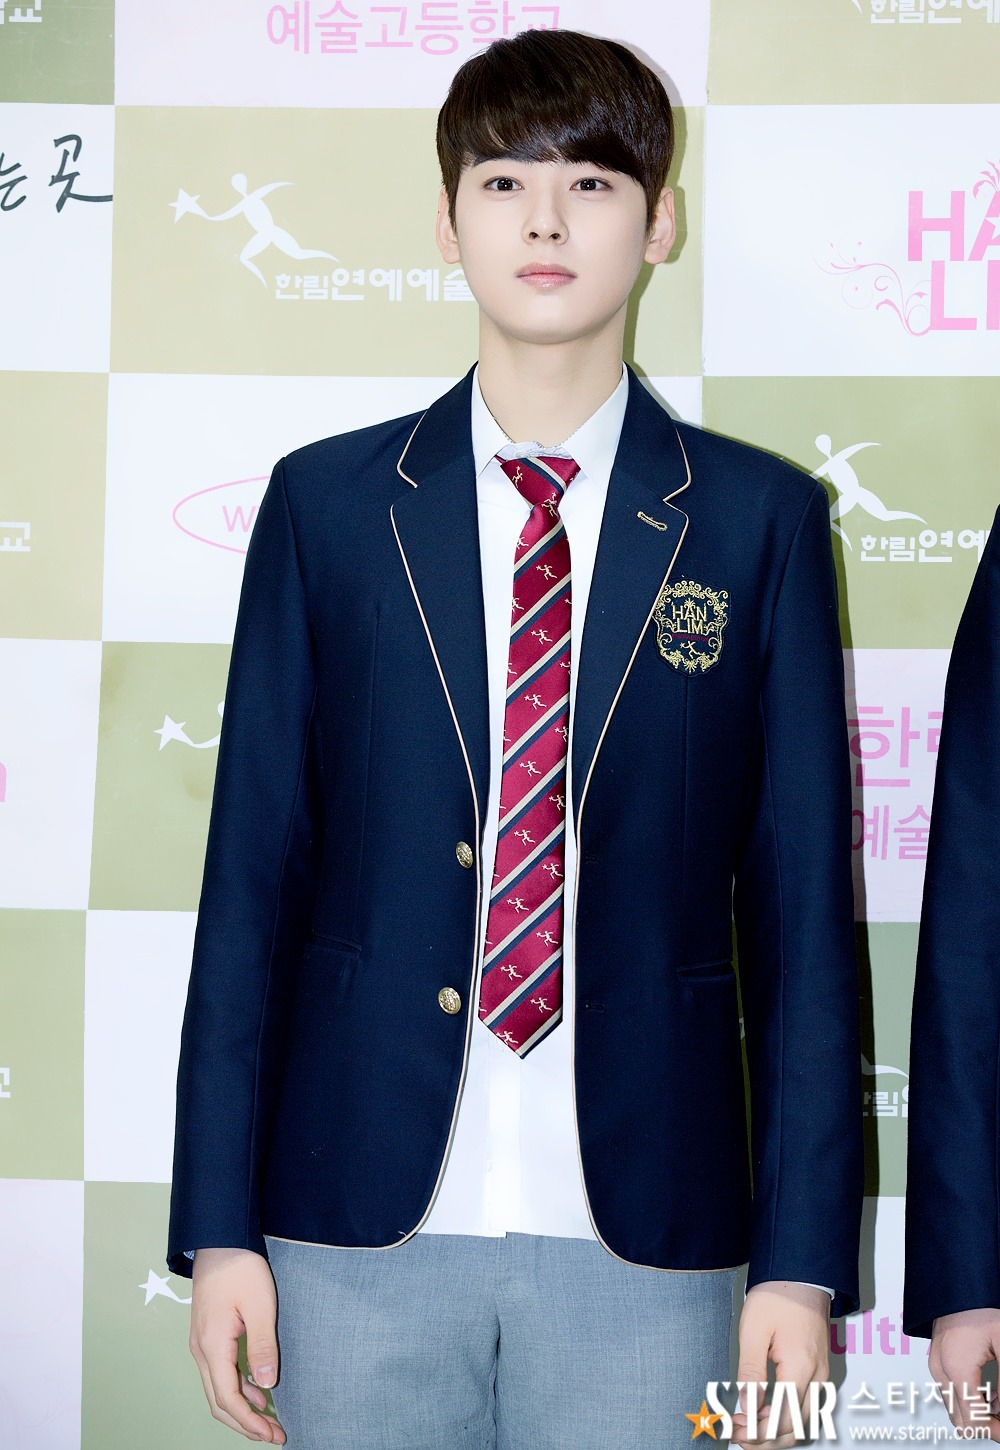 These school uniforms became famous thanks to the idols that